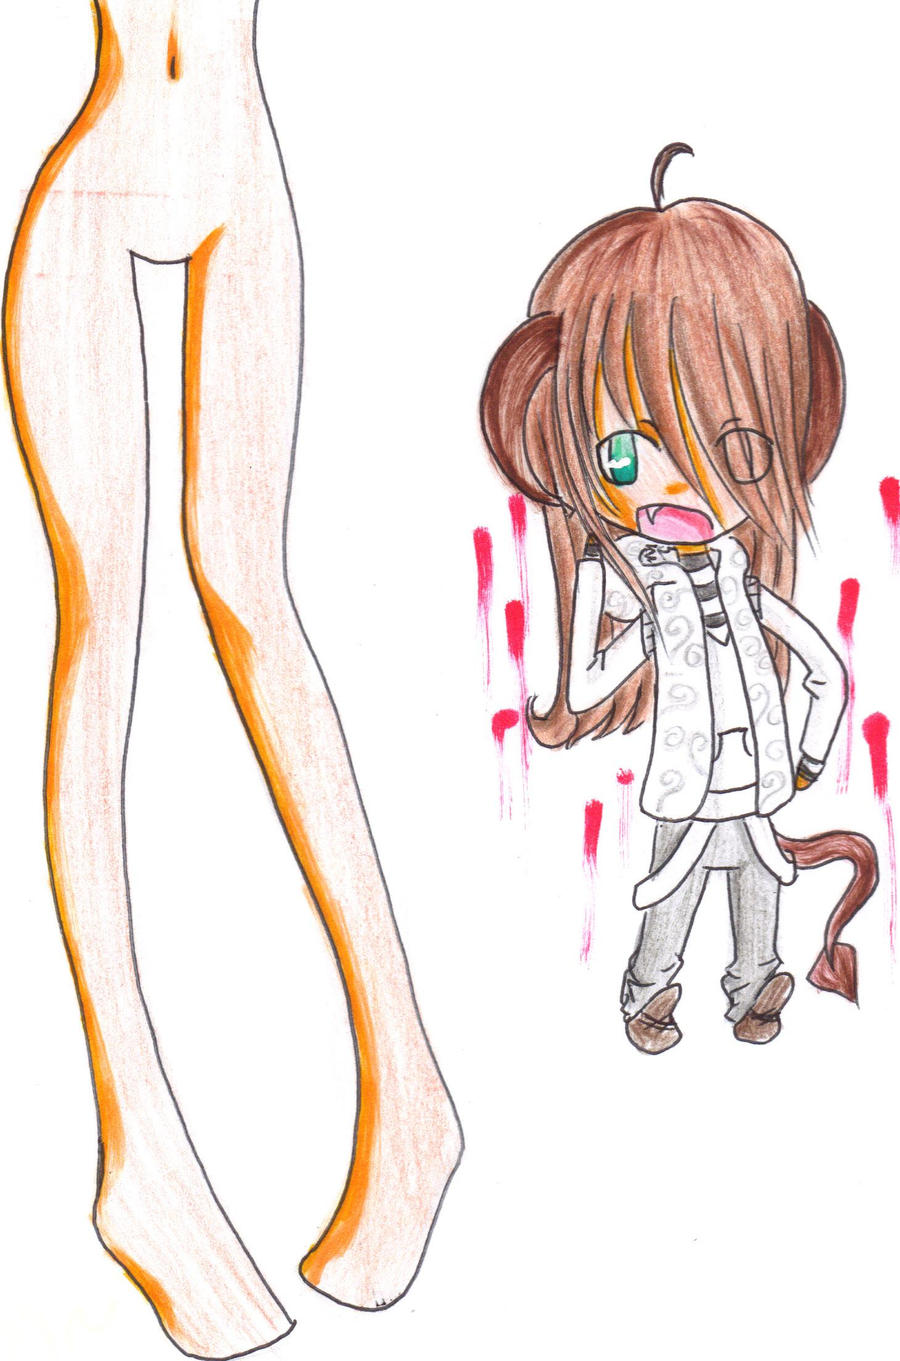 I Like 2 Draw Legs By 100AnimeGirl100 On DeviantArt